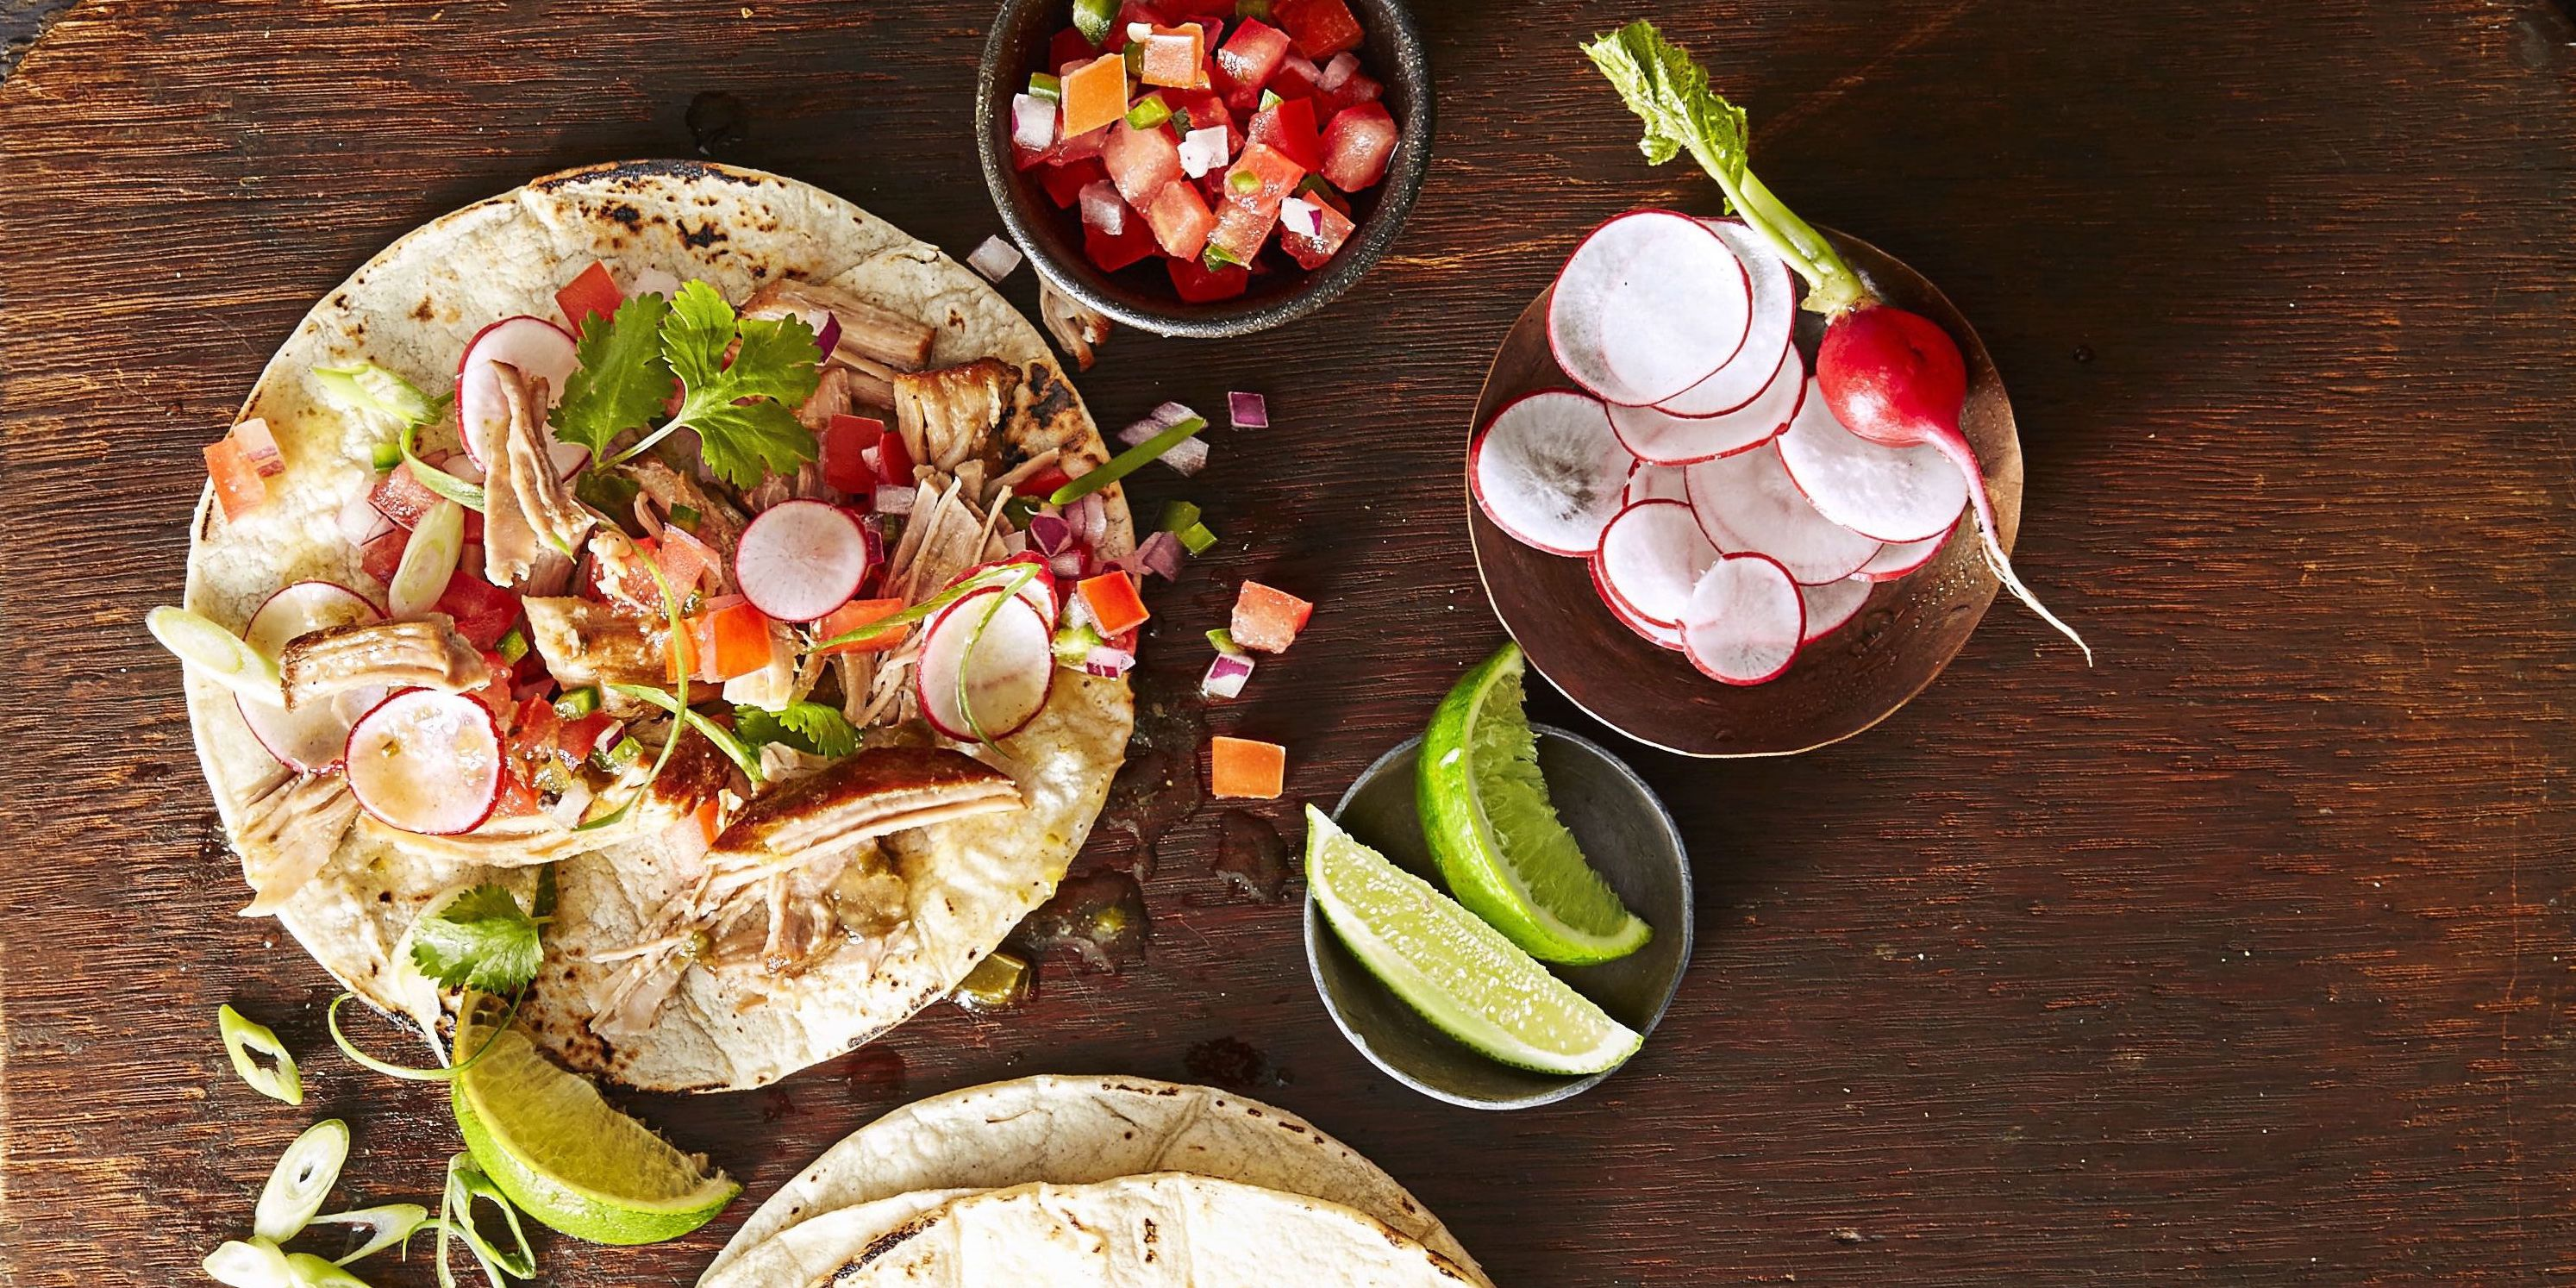 15 Authentic Mexican Recipes to Celebrate Cinco de Mayo